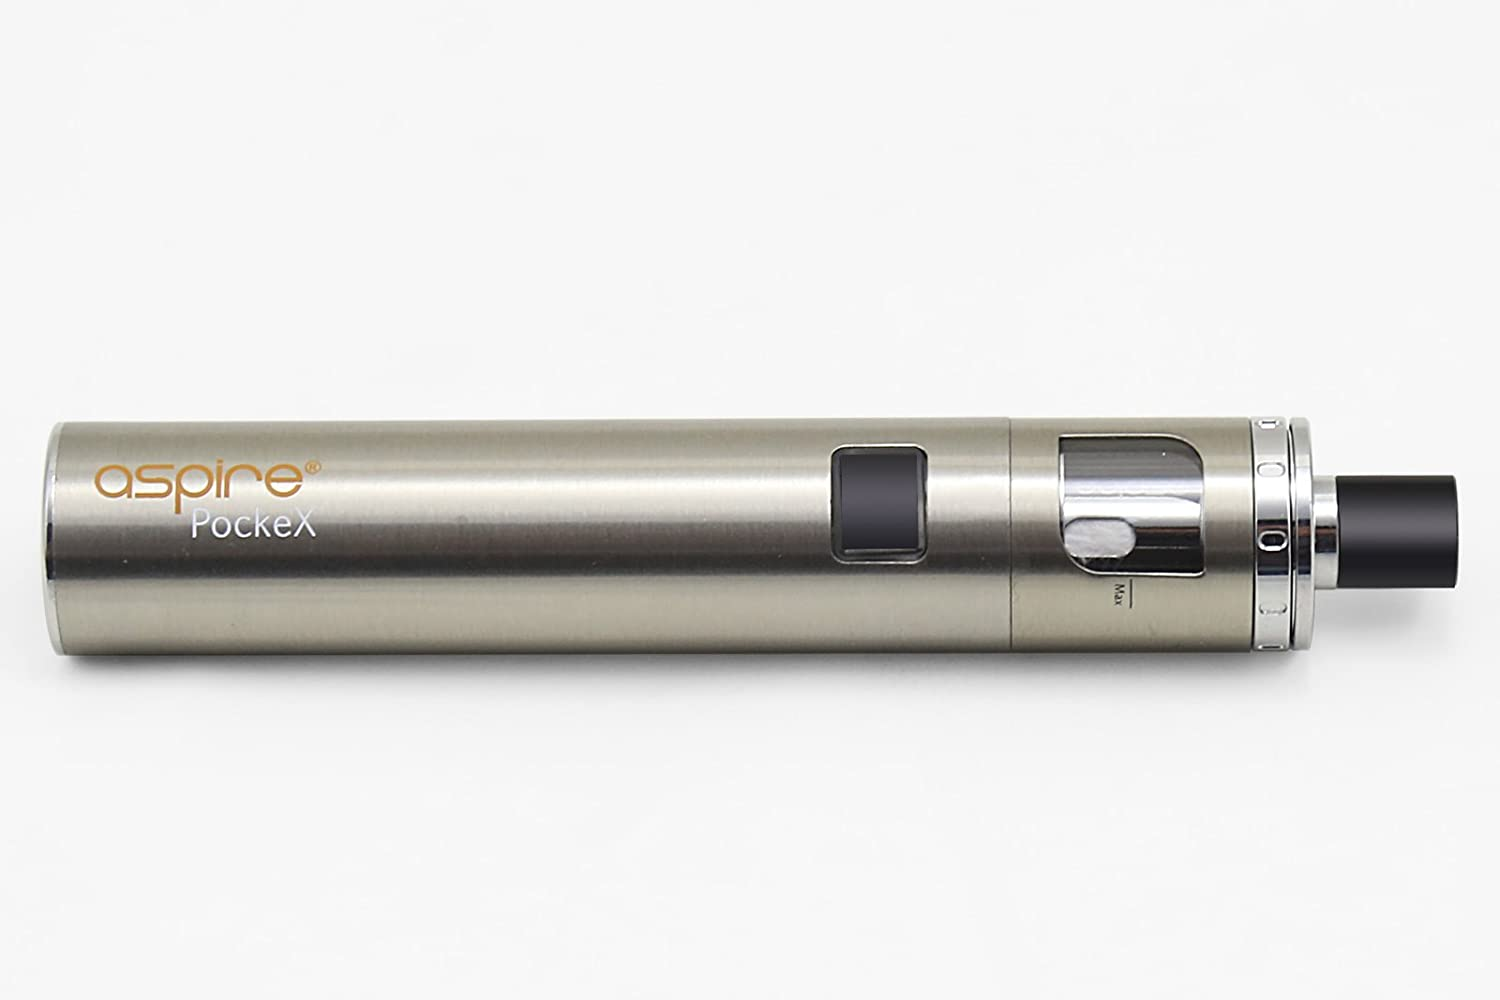 Aspire Pockex Starter Kit, Pocket AIO All in One (Stainless Steel) - No  Nicotine